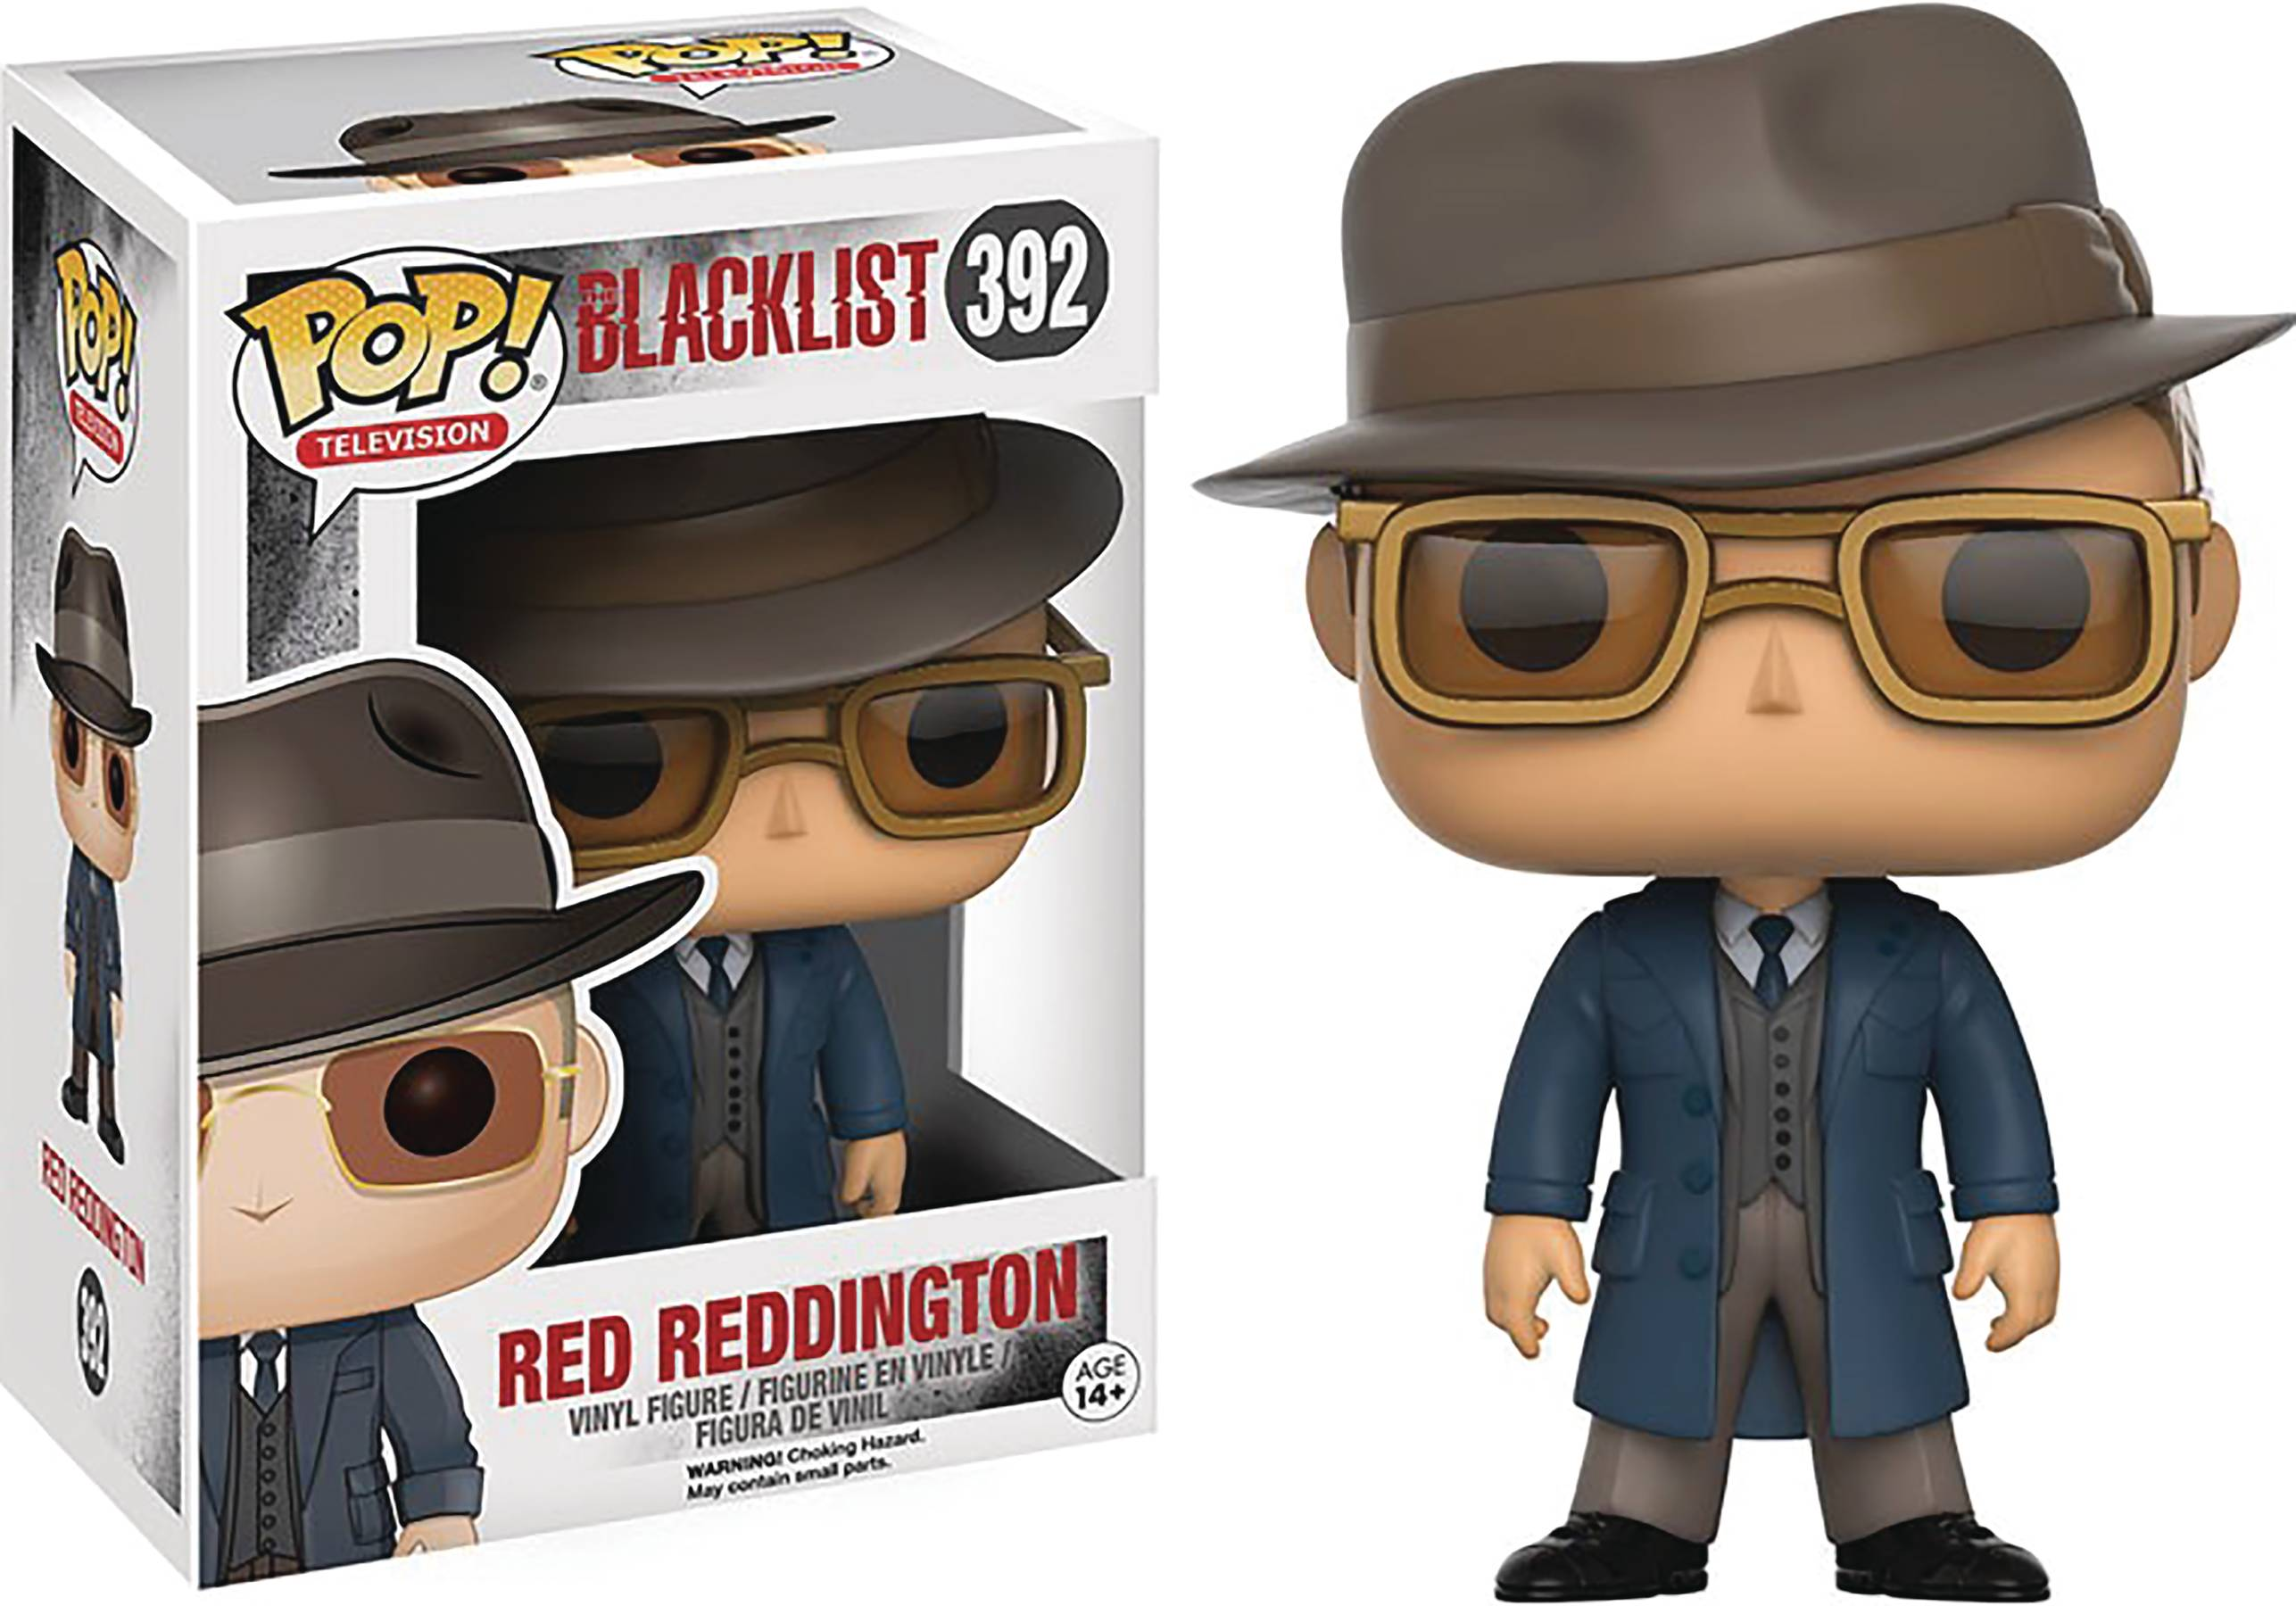 POP BLACKLIST RAYMOND REDDINGTON VINYL FIGURE